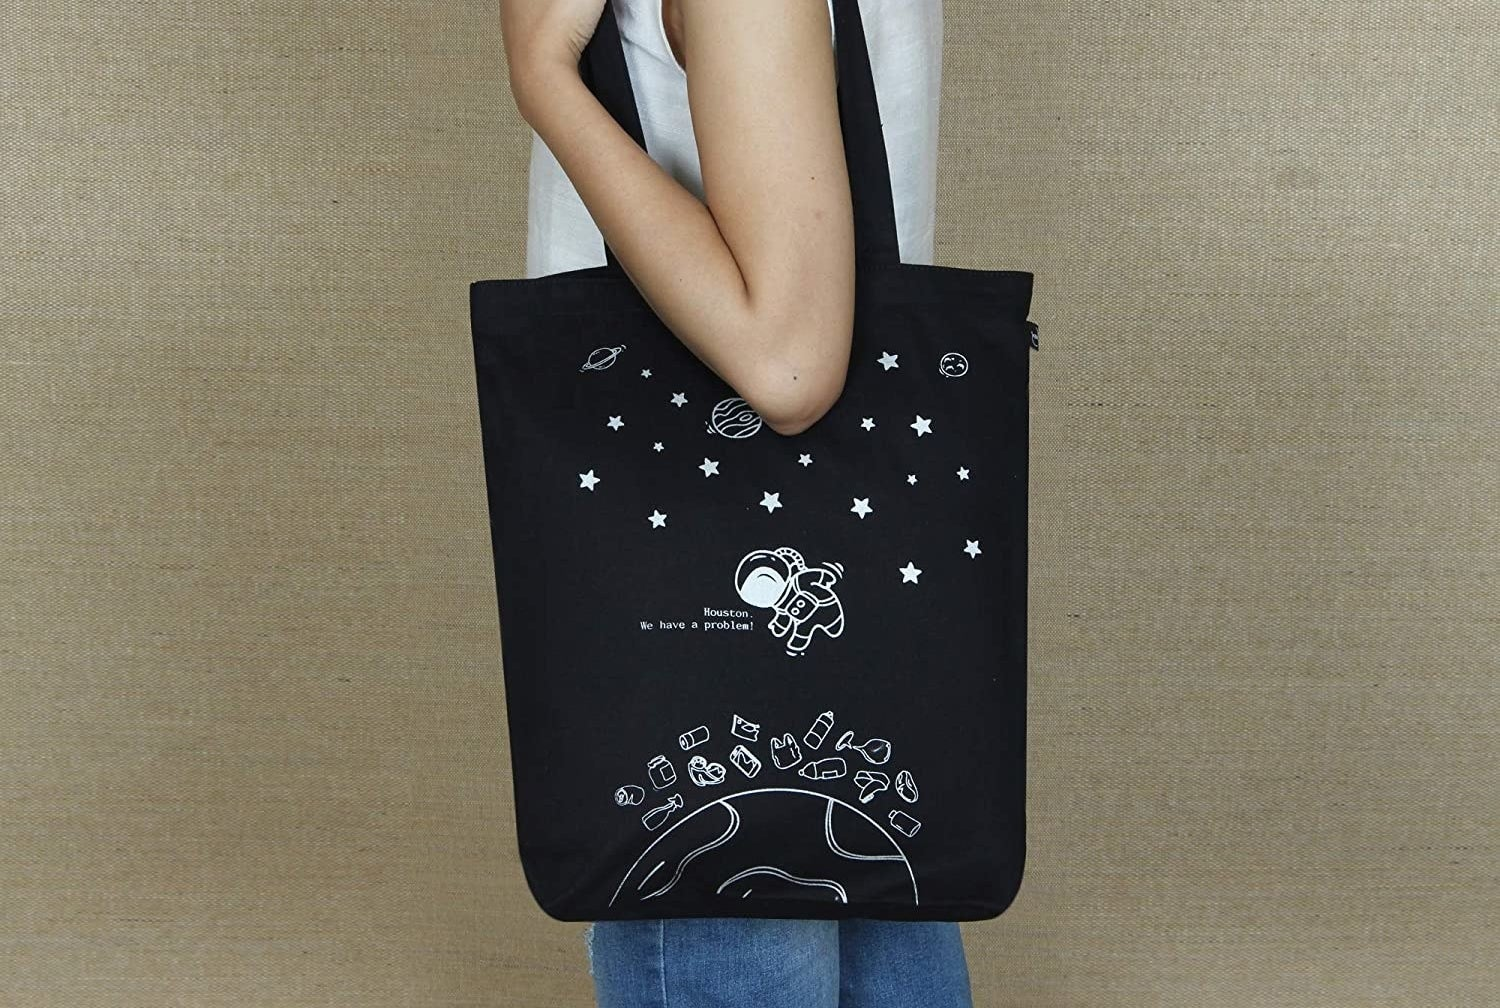 A black tote with and astronaut, stars, planets, and grocery items printed on it in white.